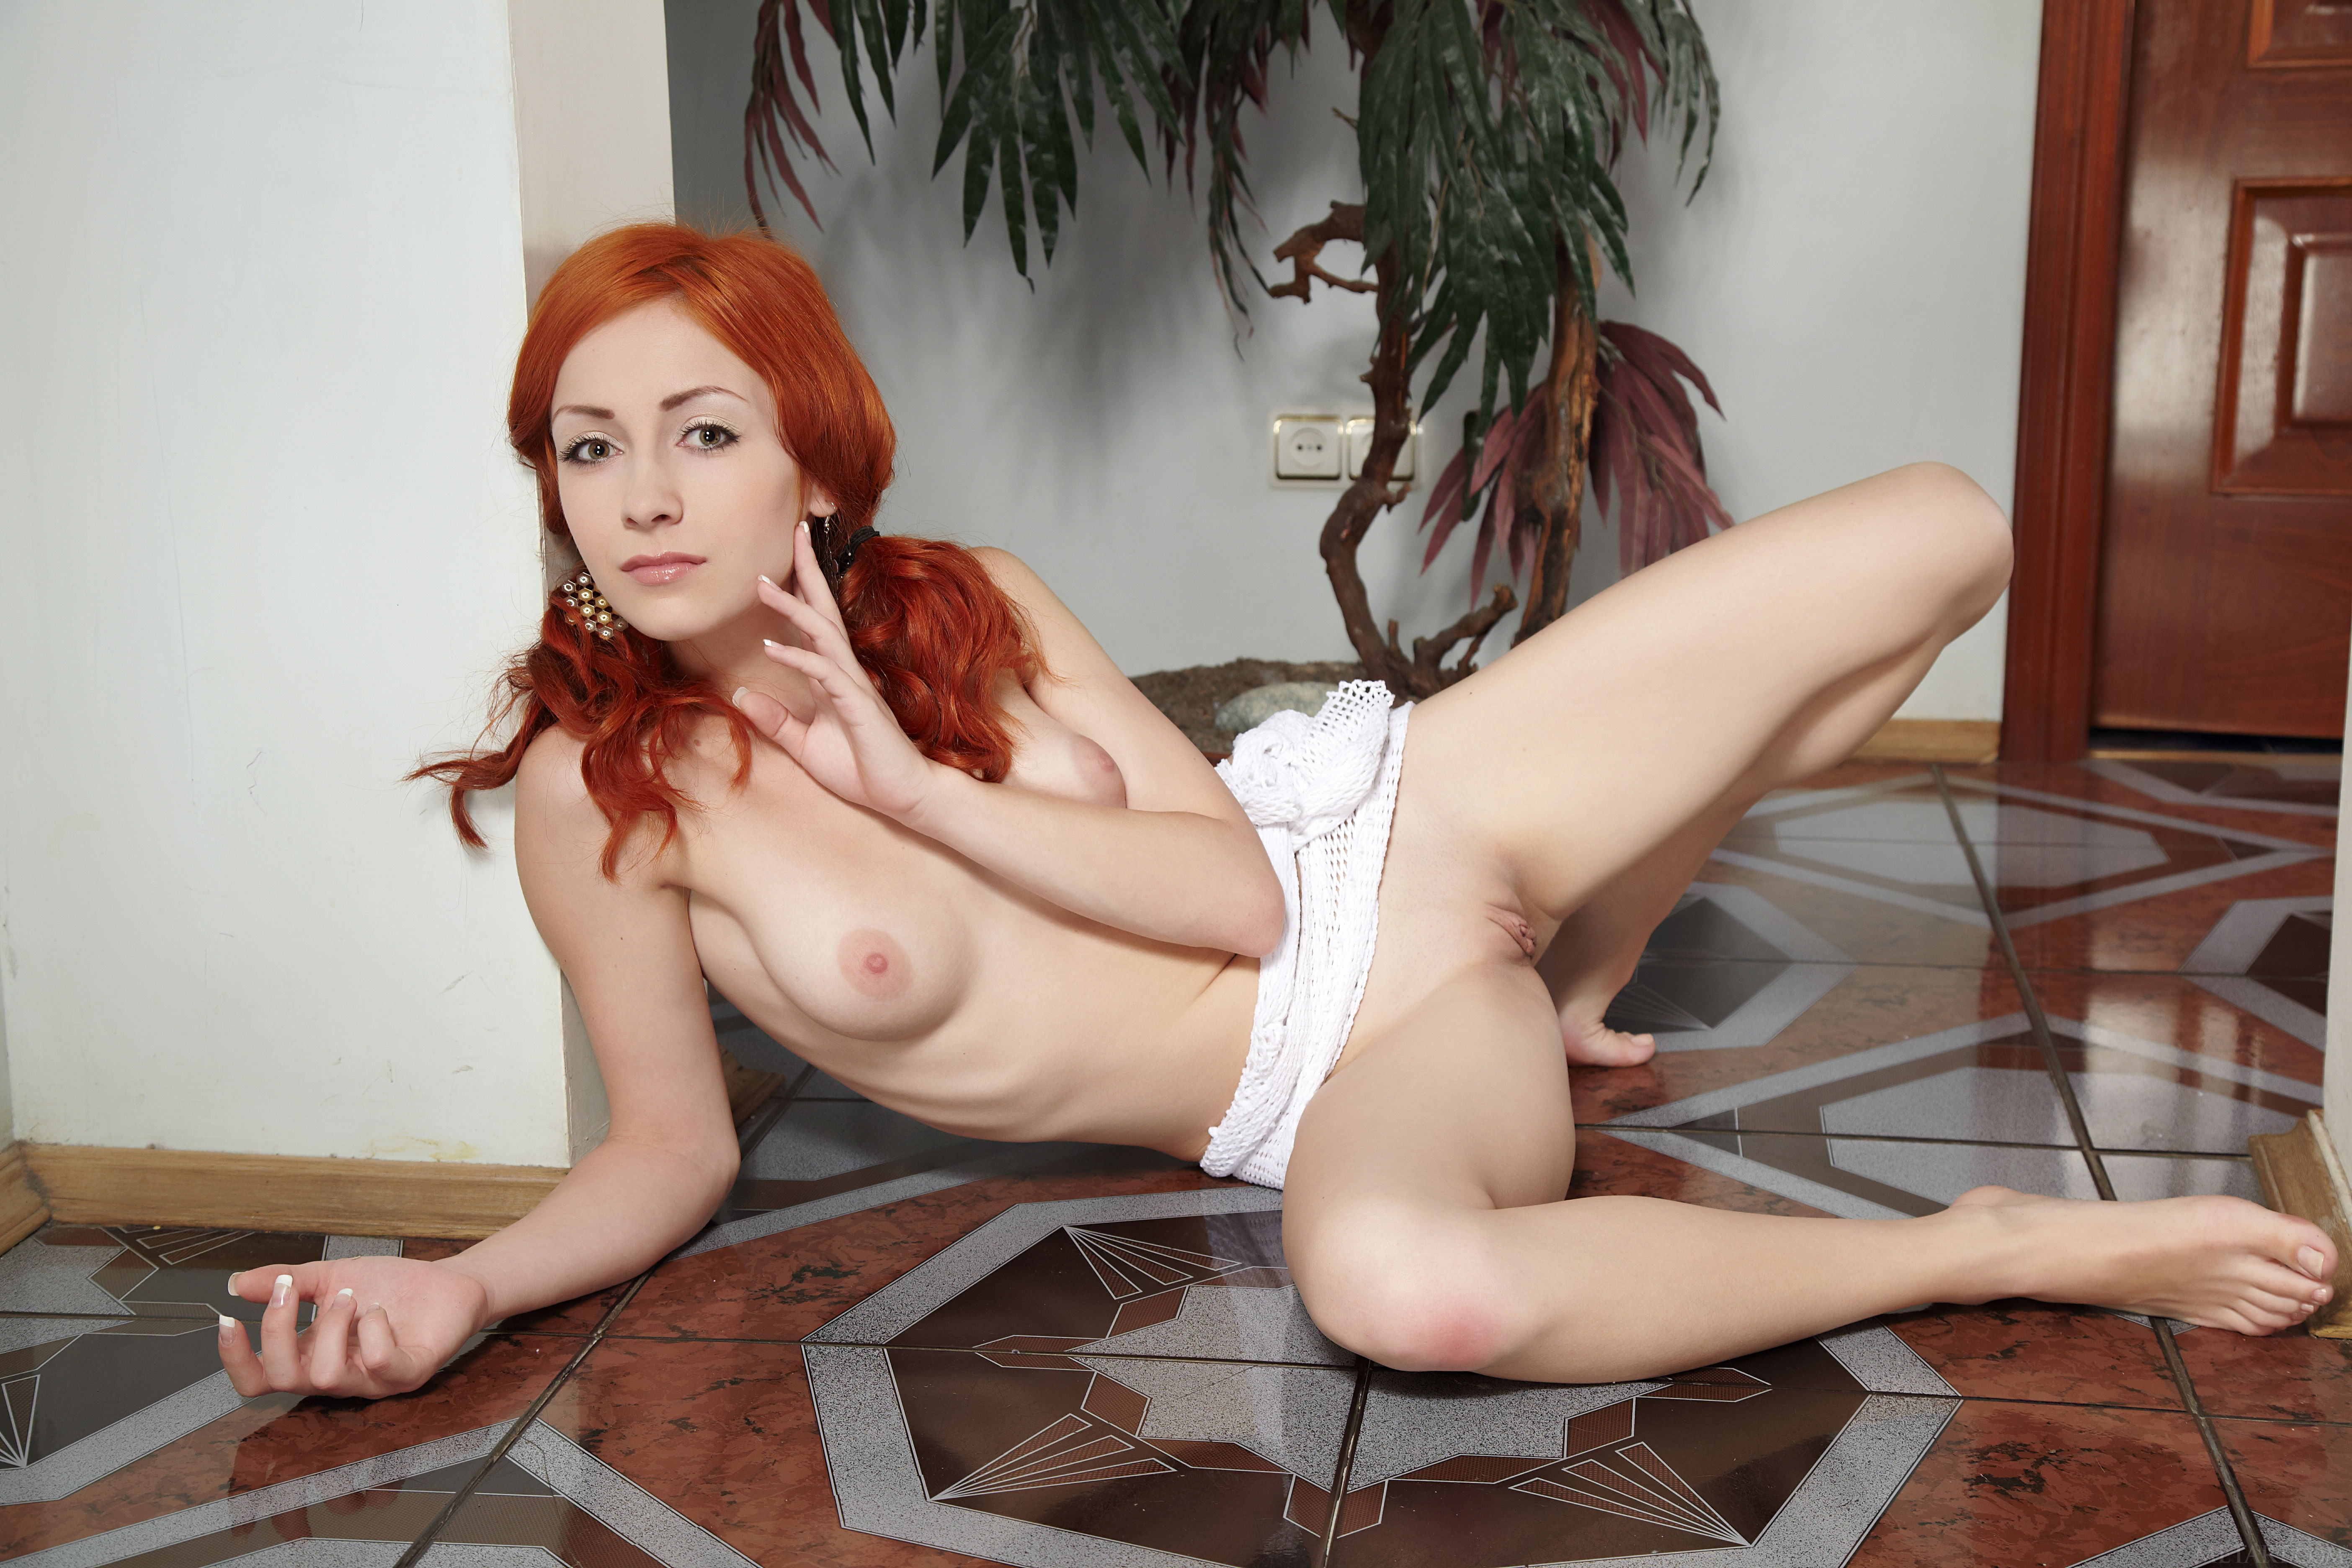 Authoritative message nude redhead and feet think, that